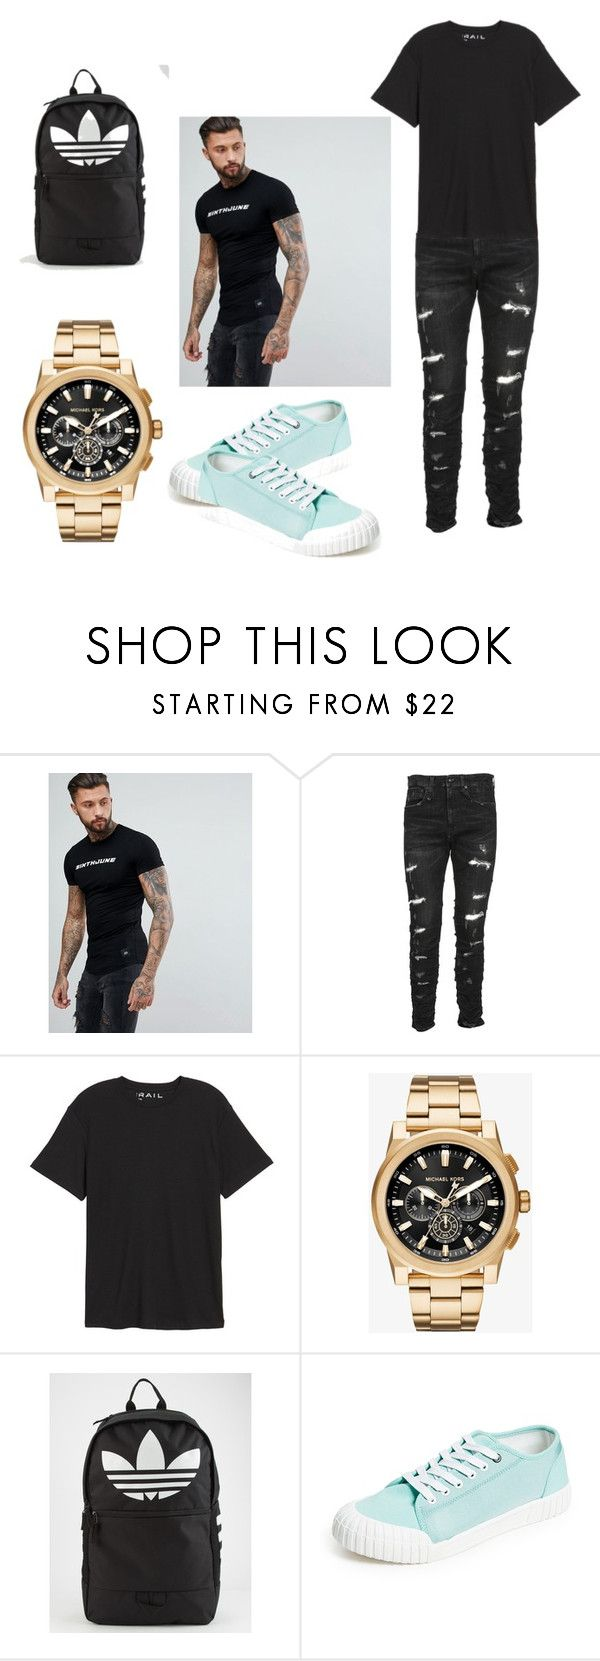 """Look"" by miloni-jhaveri ❤ liked on Polyvore featuring Sixth June, R13, Public Opinion, Michael Kors, adidas, men's fashion and menswear"